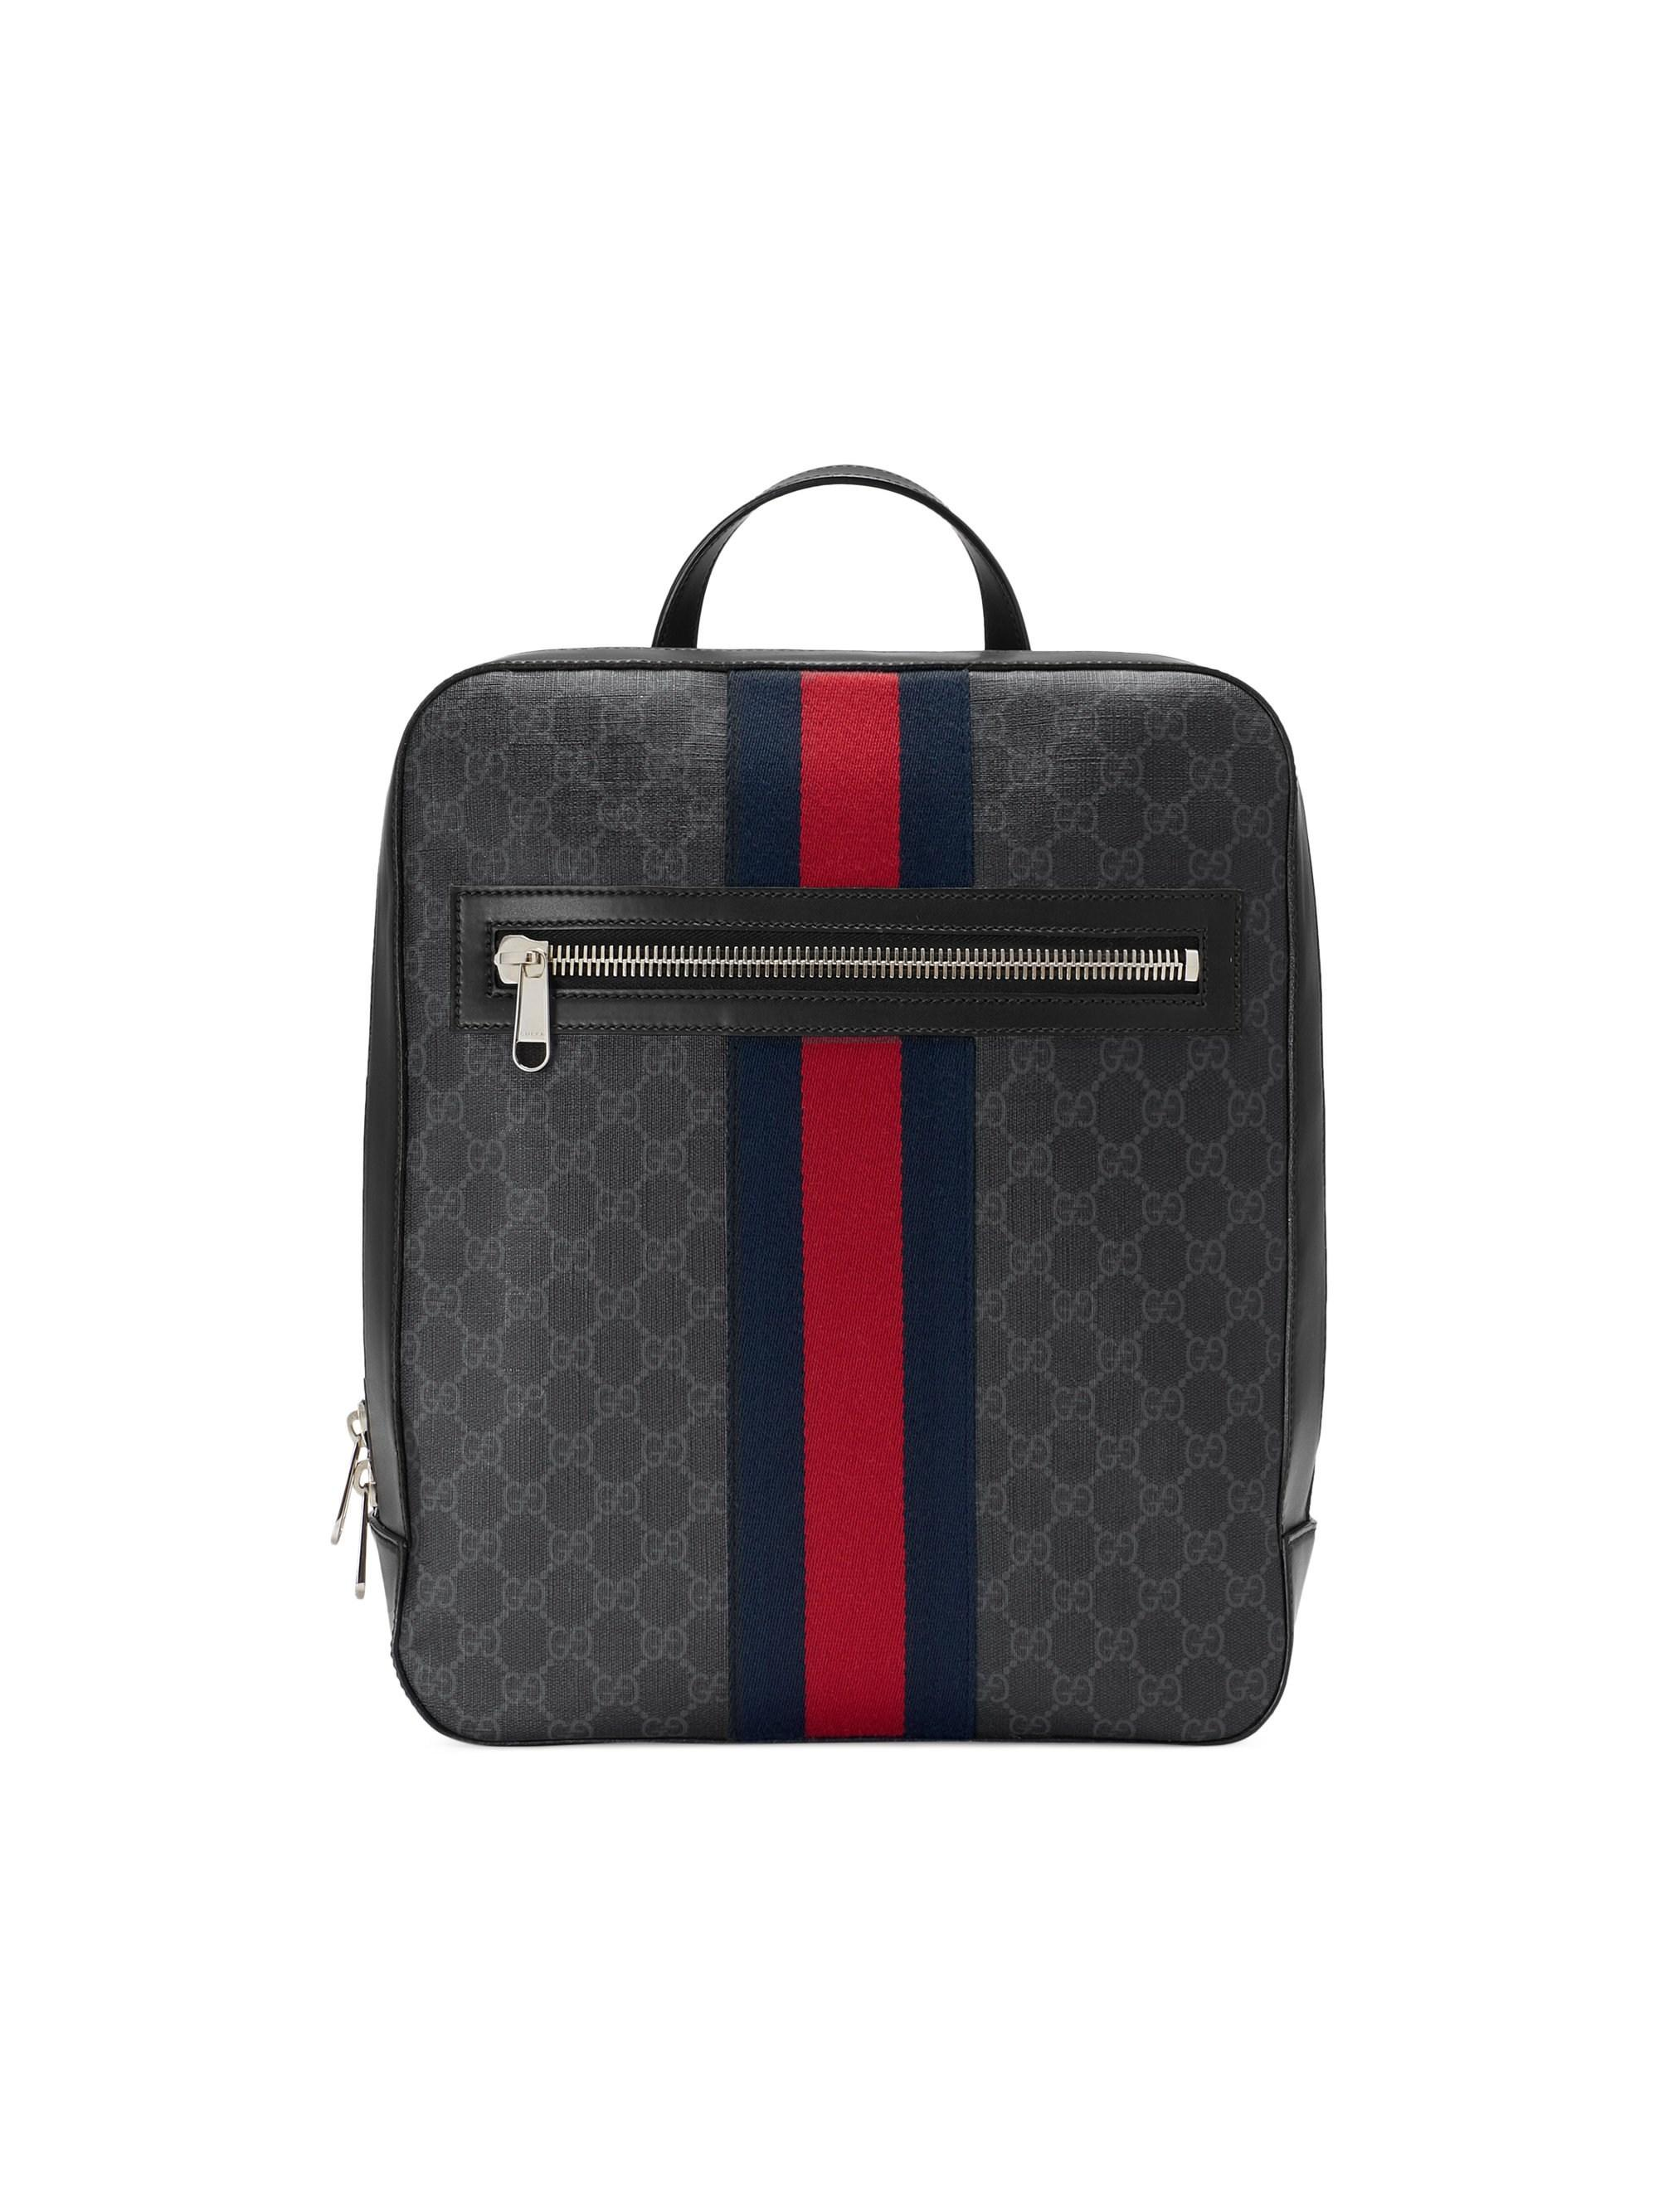 2e542580c26 Lyst - Gucci GG Supreme Web Backpack in Black for Men - Save 44%